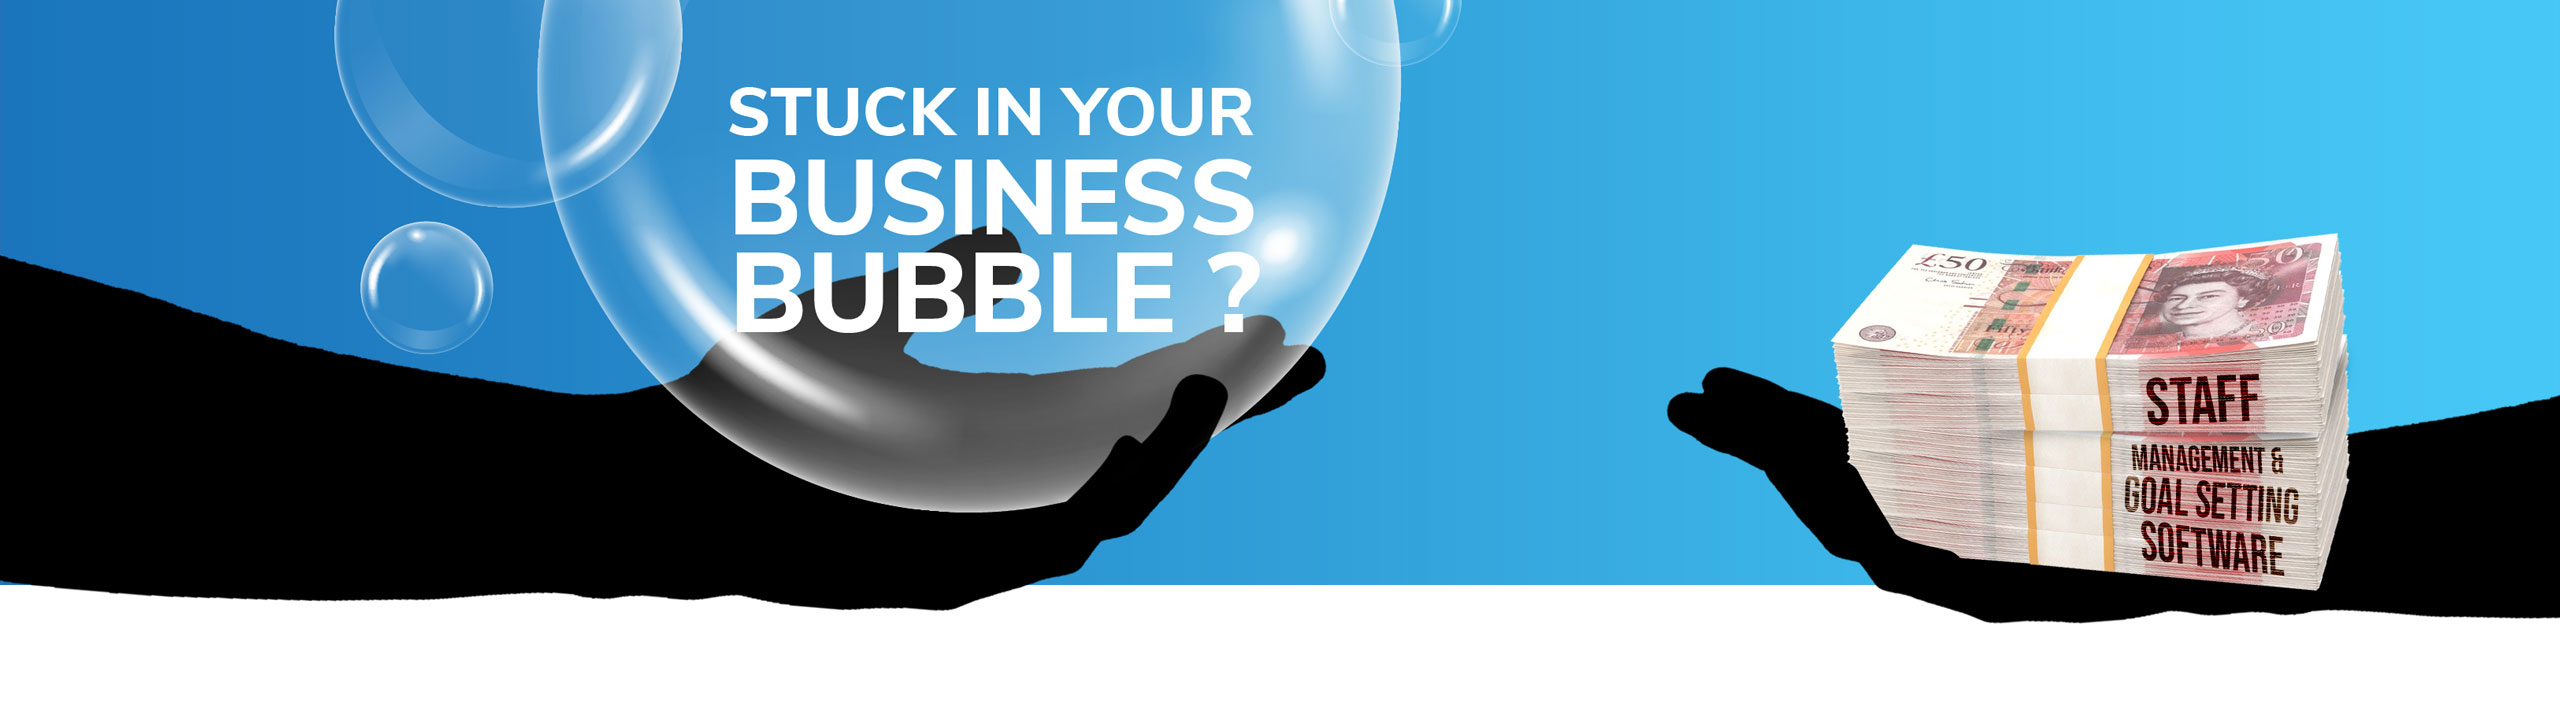 Stuck in Your Business Bubble? Try our Staff Management & Goal Setting Software